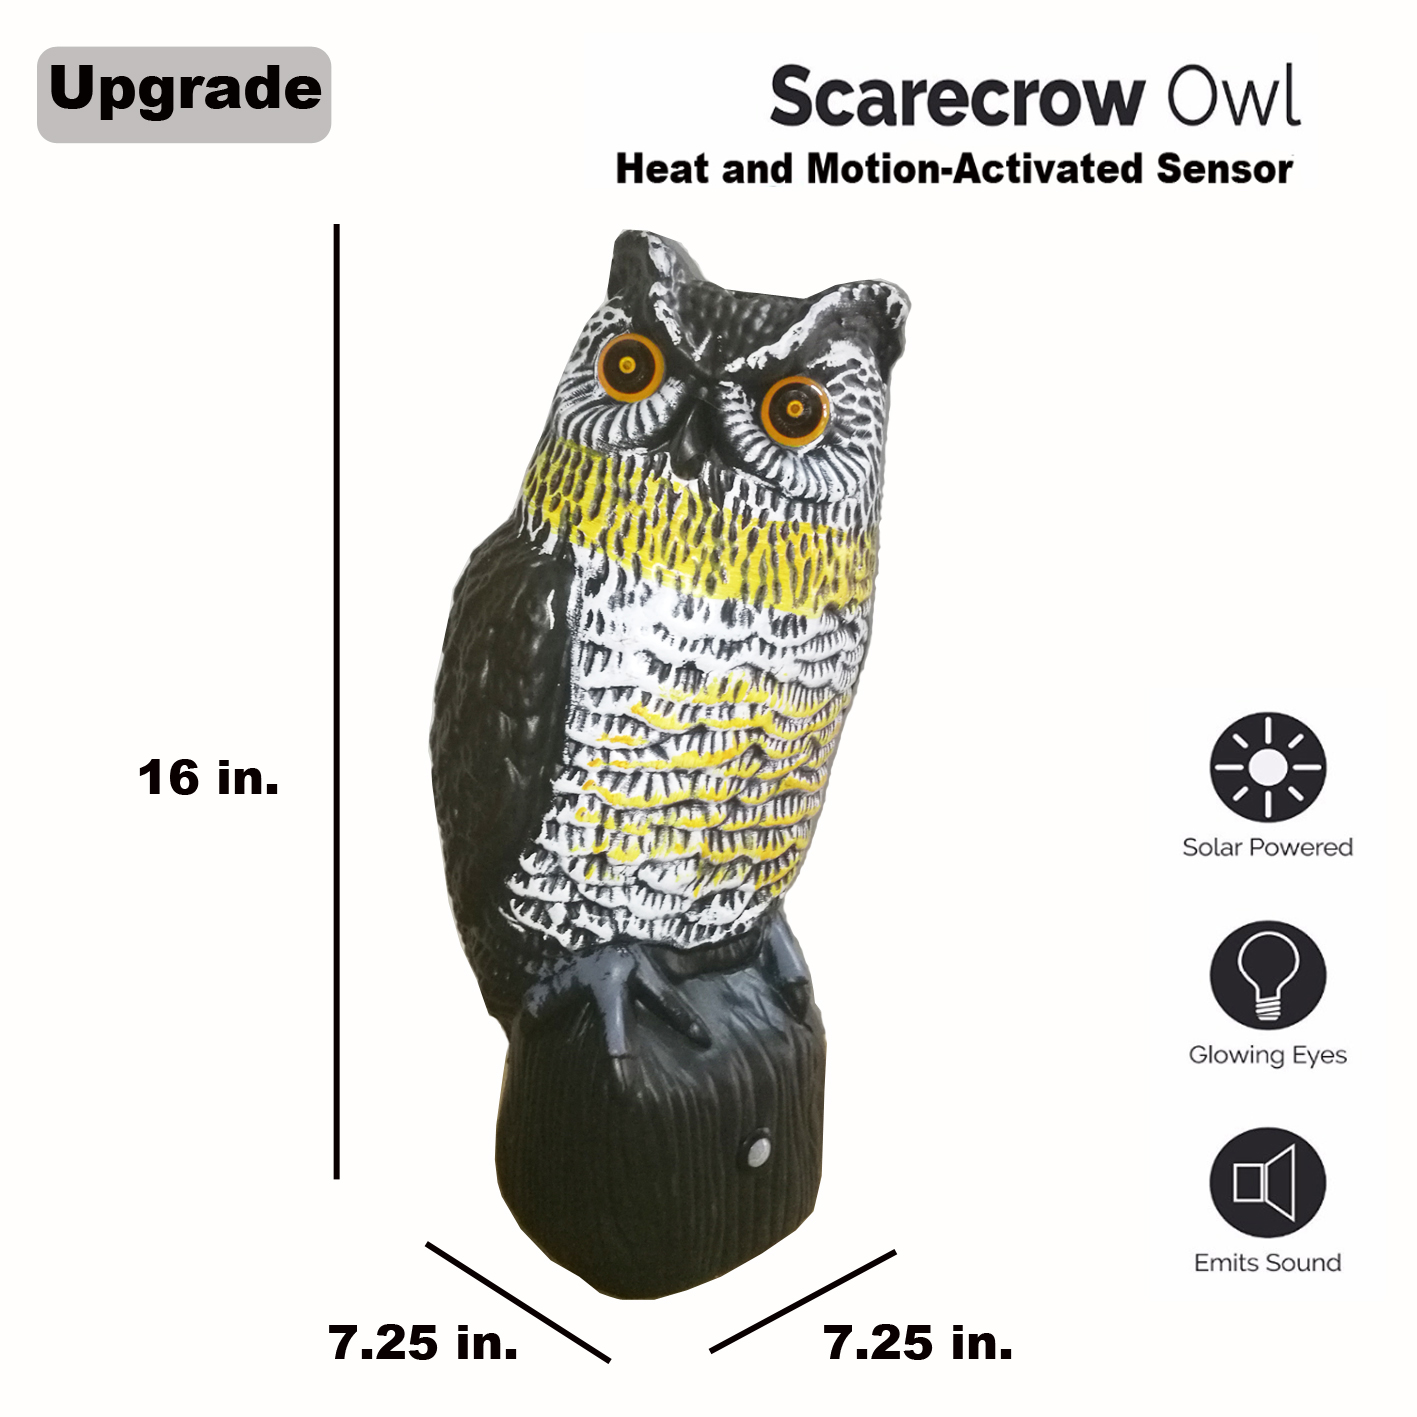 Solar Powered Animal Repellent Scarecrow Owl PIR Sensor Motion Activated Scarecrow Diverter with Flash Eyes Frightening